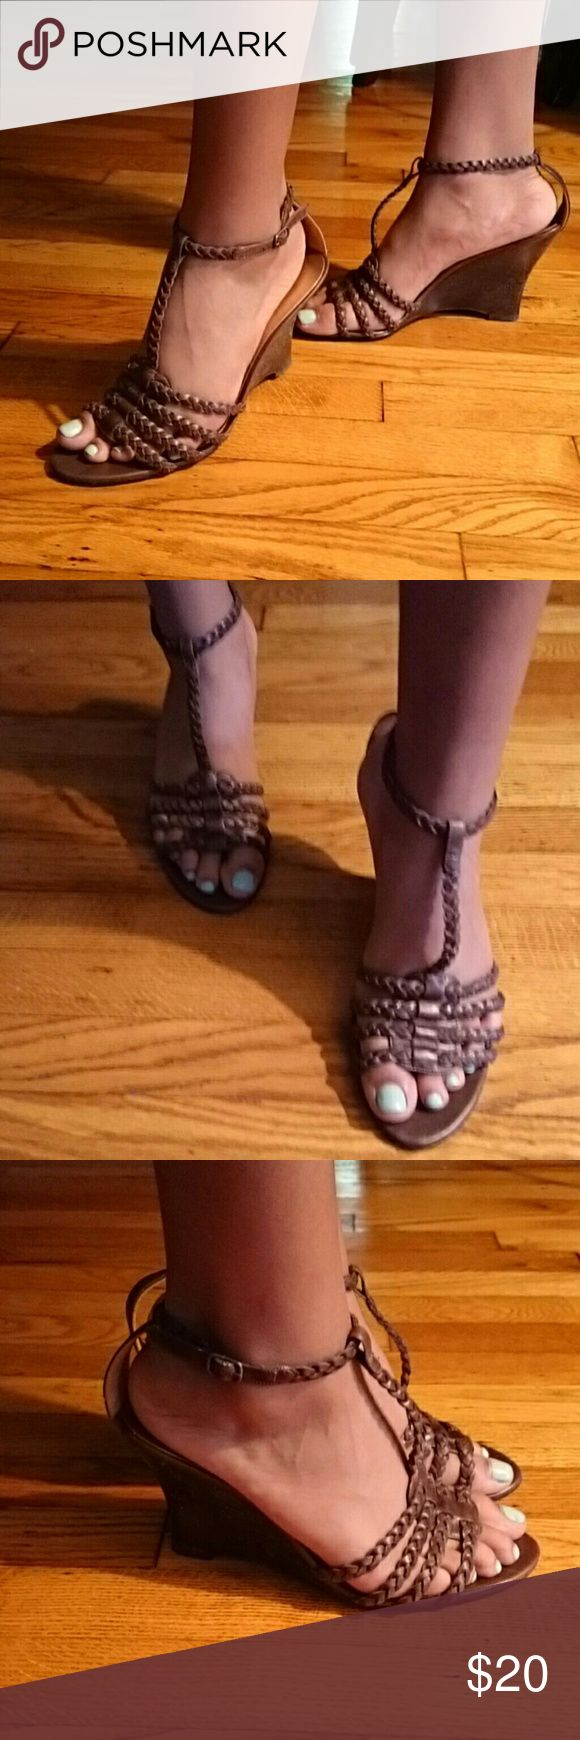 GUESS by Marciano sandals Used in great condition brown braided leather scrappy wedge sandals..Great price! Guess by Marciano Shoes Sandals